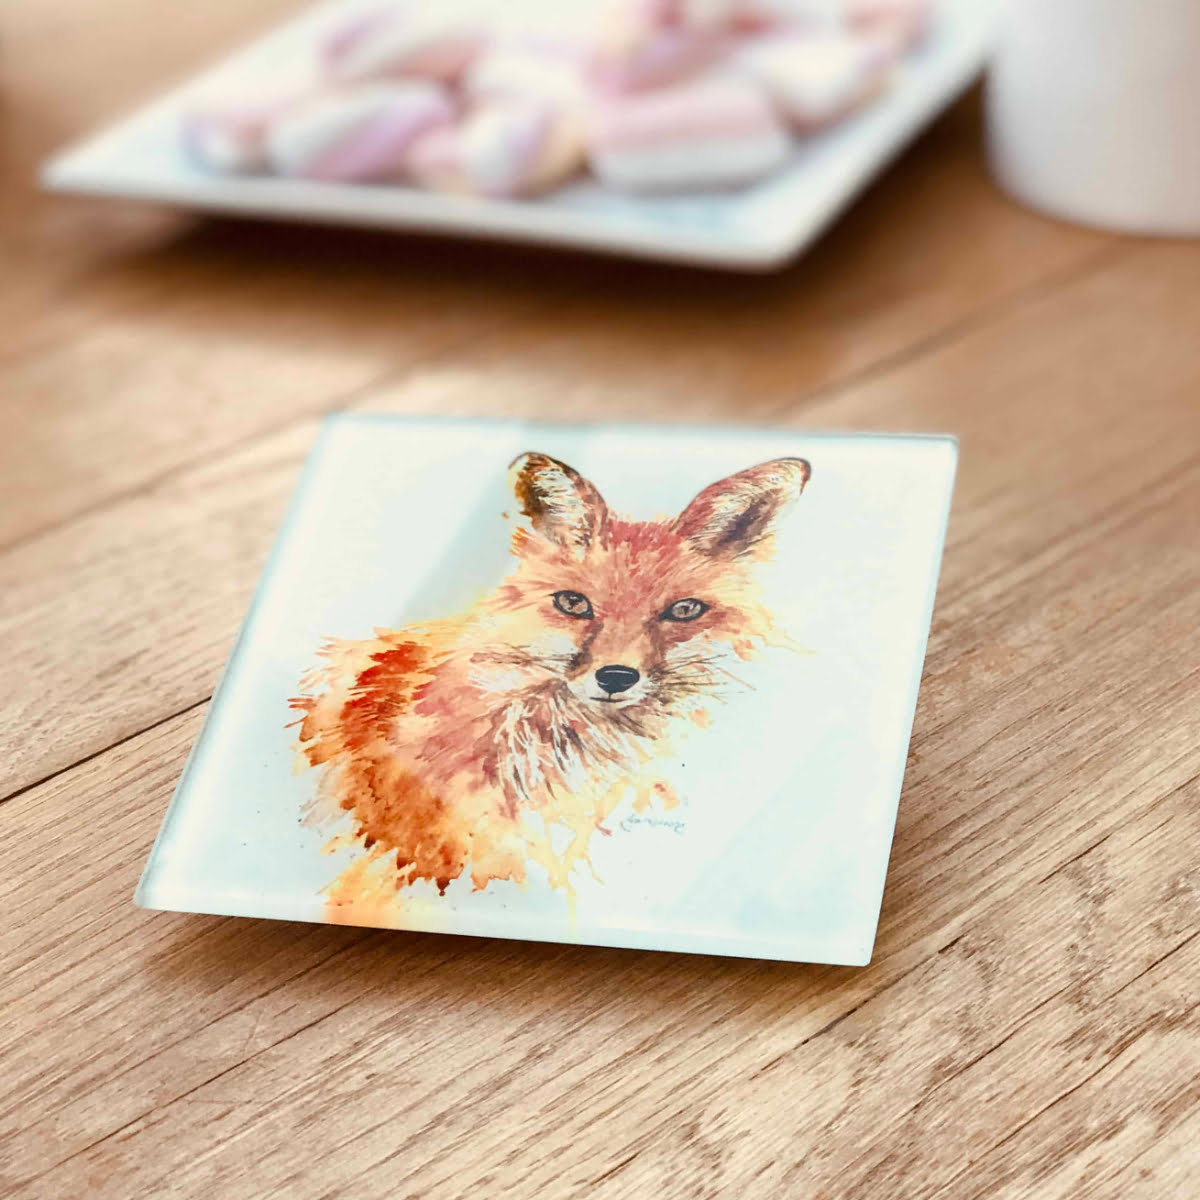 luxury glass fox coaster gift by Joan Kennedy